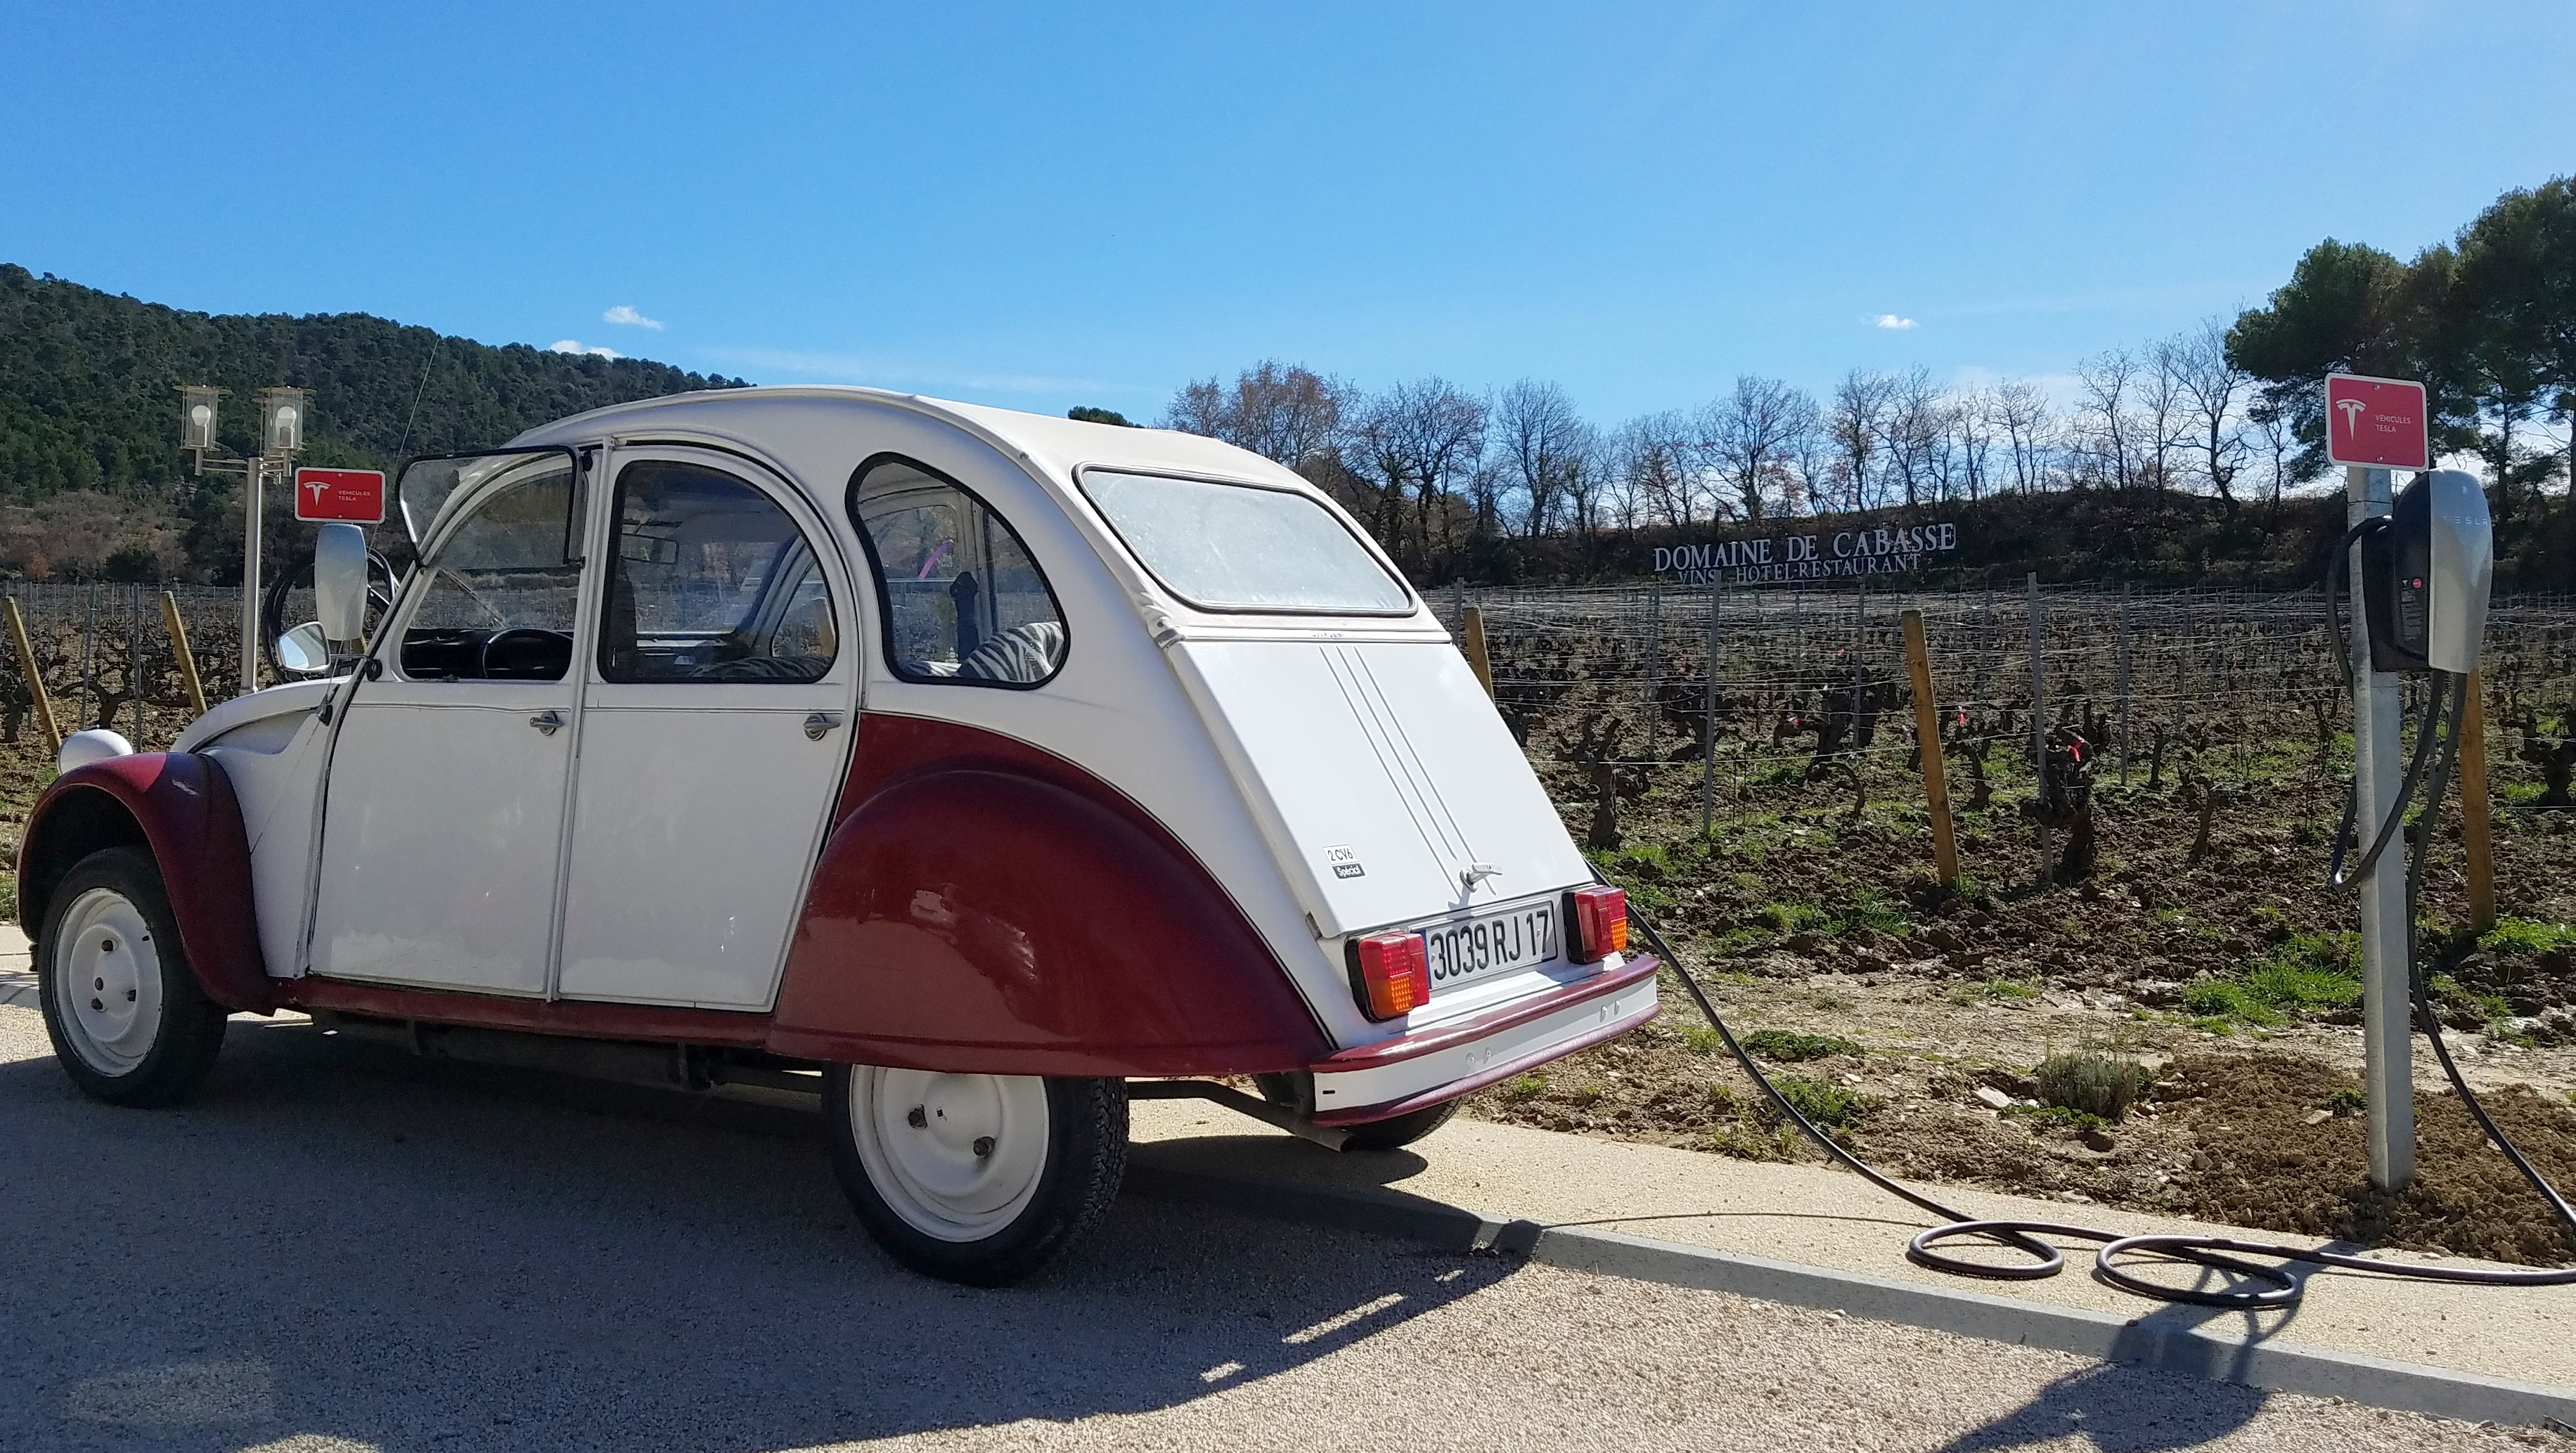 The 2CV Tesla from the Domaine de Cabasse recharges its batteries